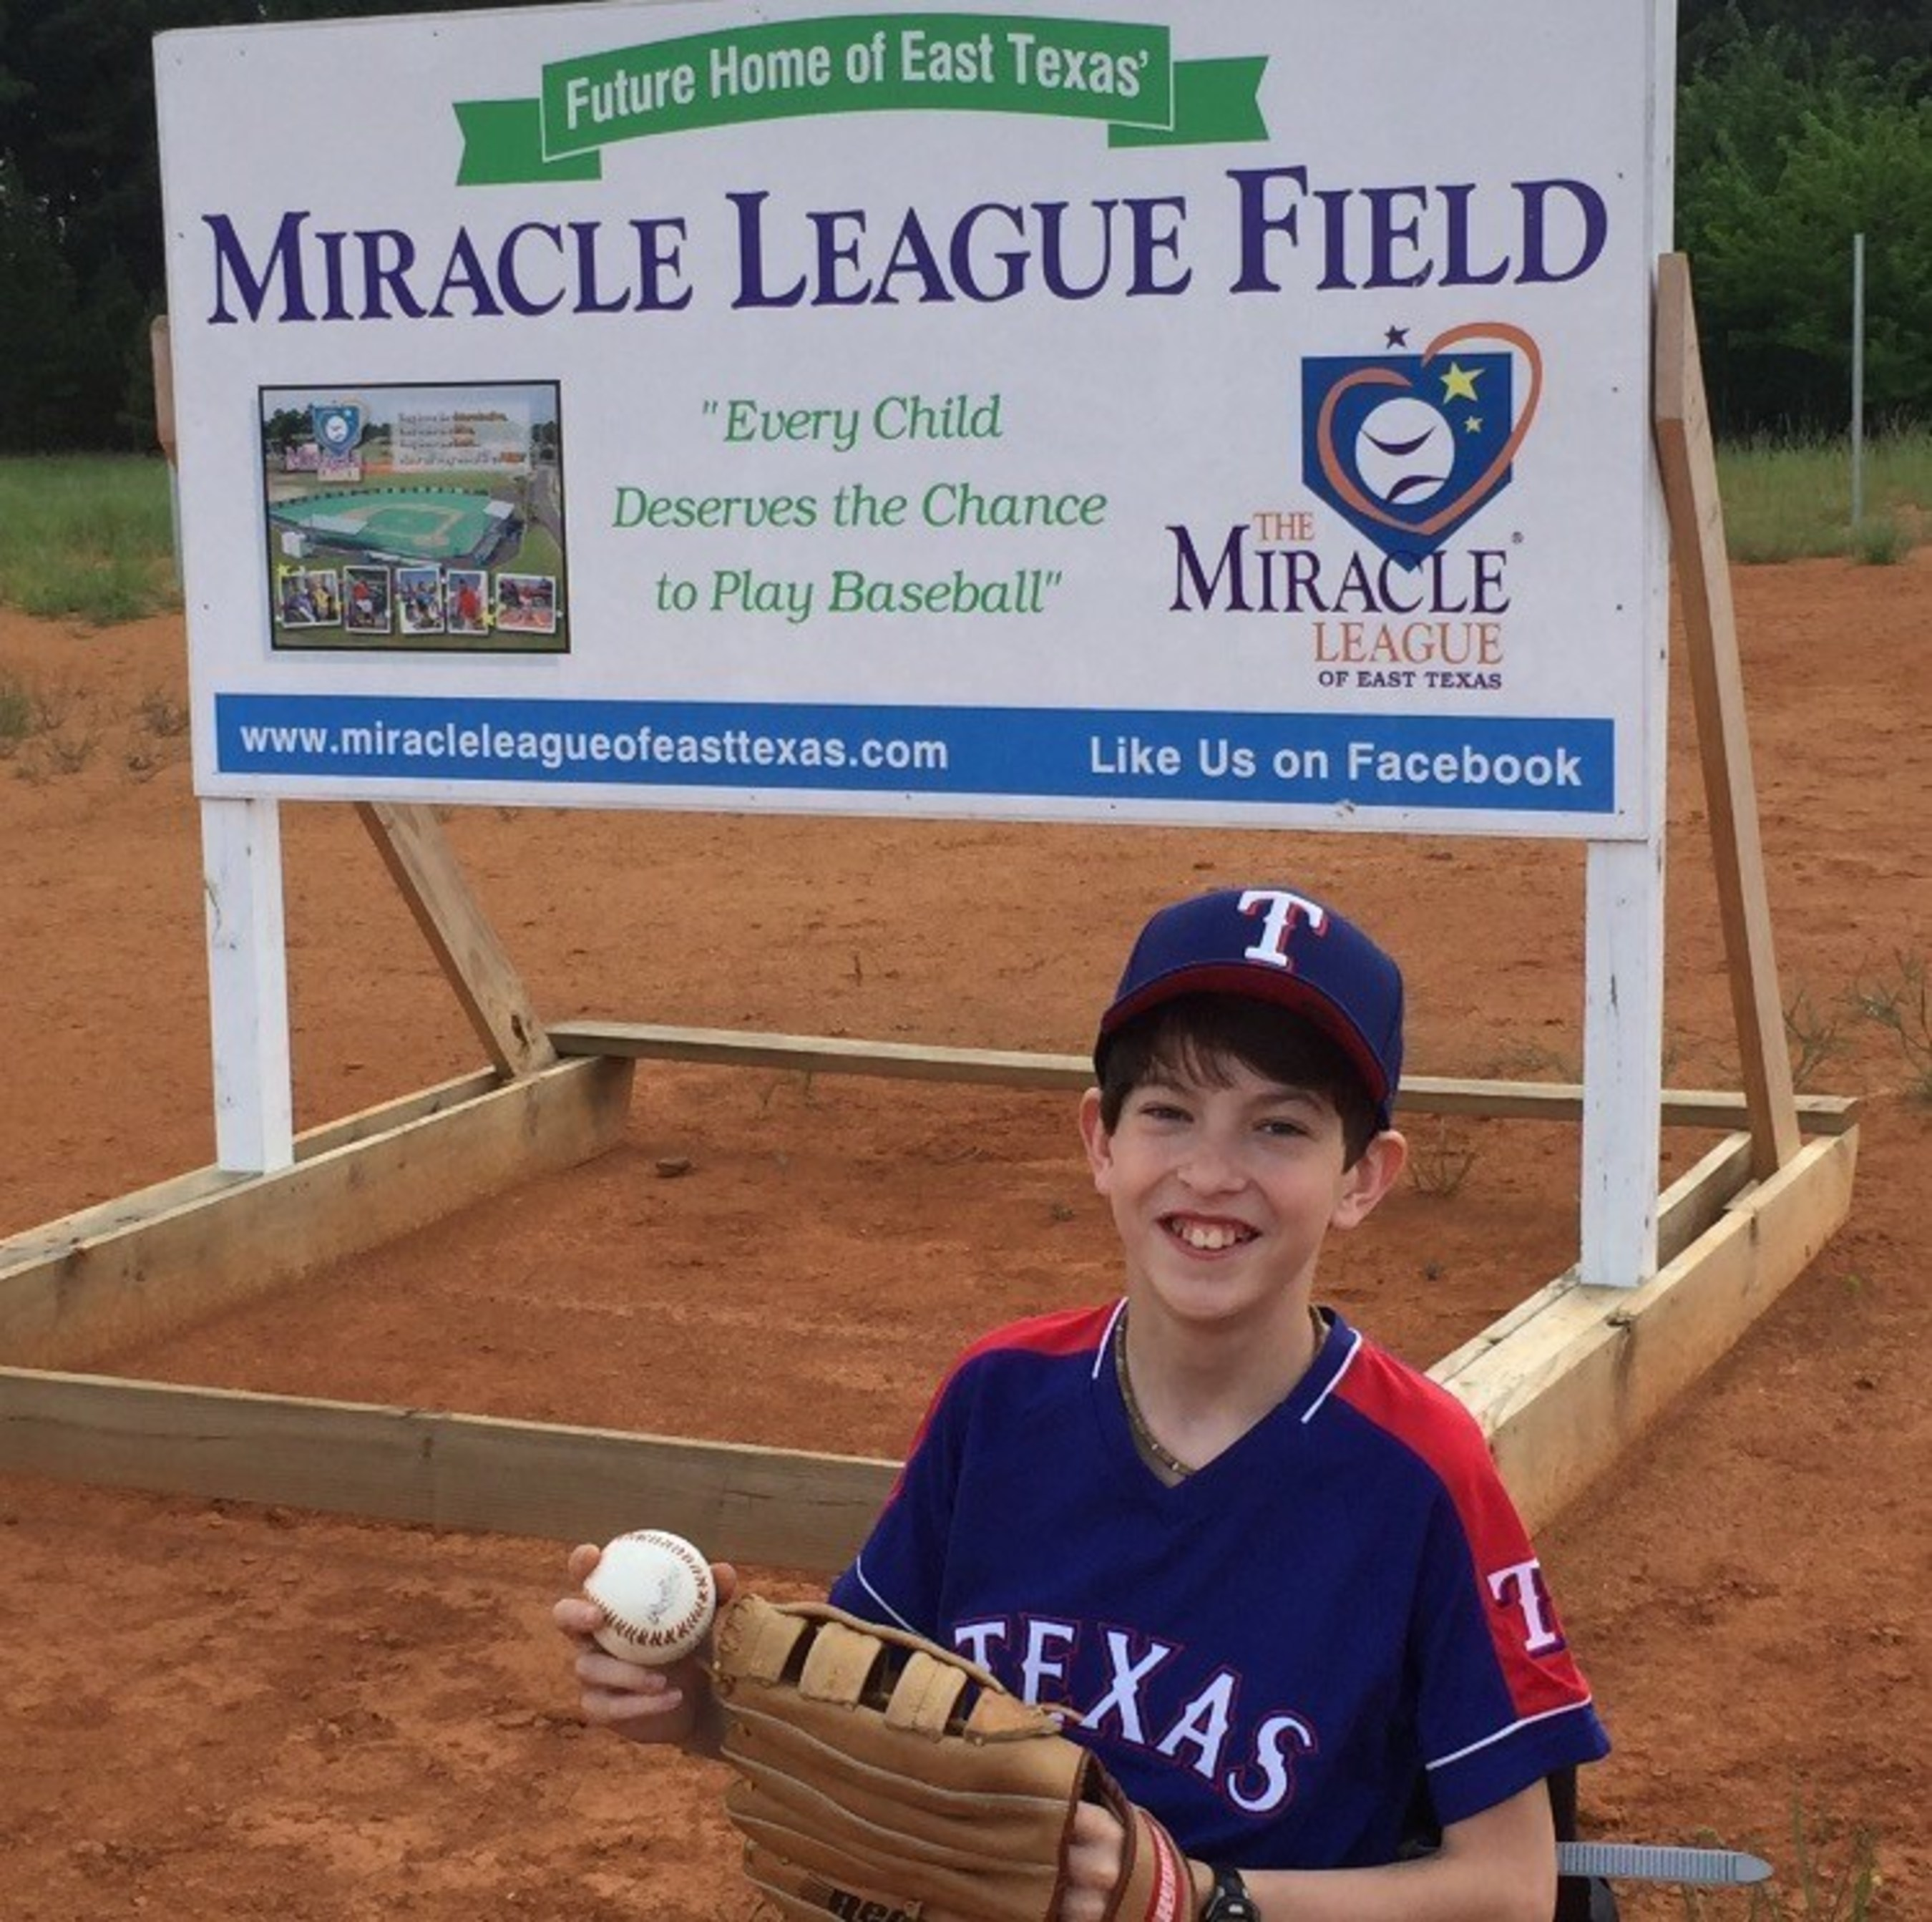 Joshua Sanders-Athlete from The Miracle League of East Texas